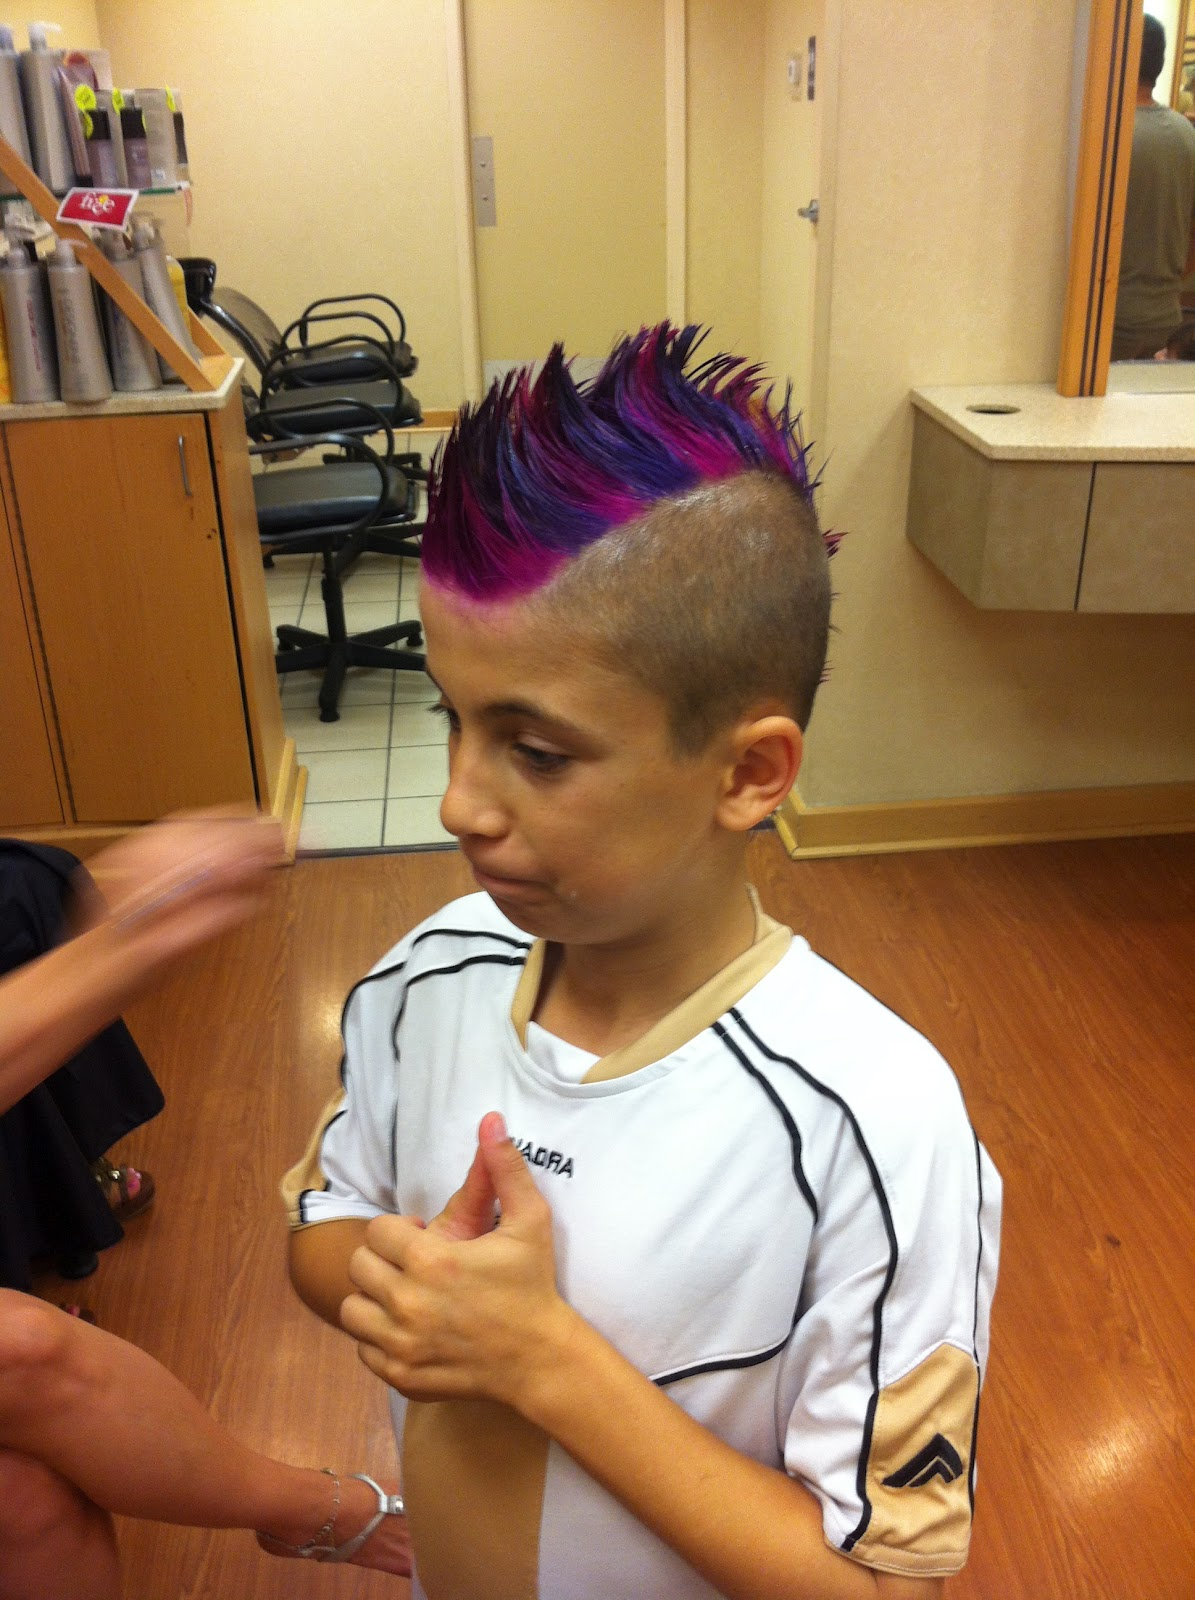 OMGLITZY: Pink and Purple Hair!